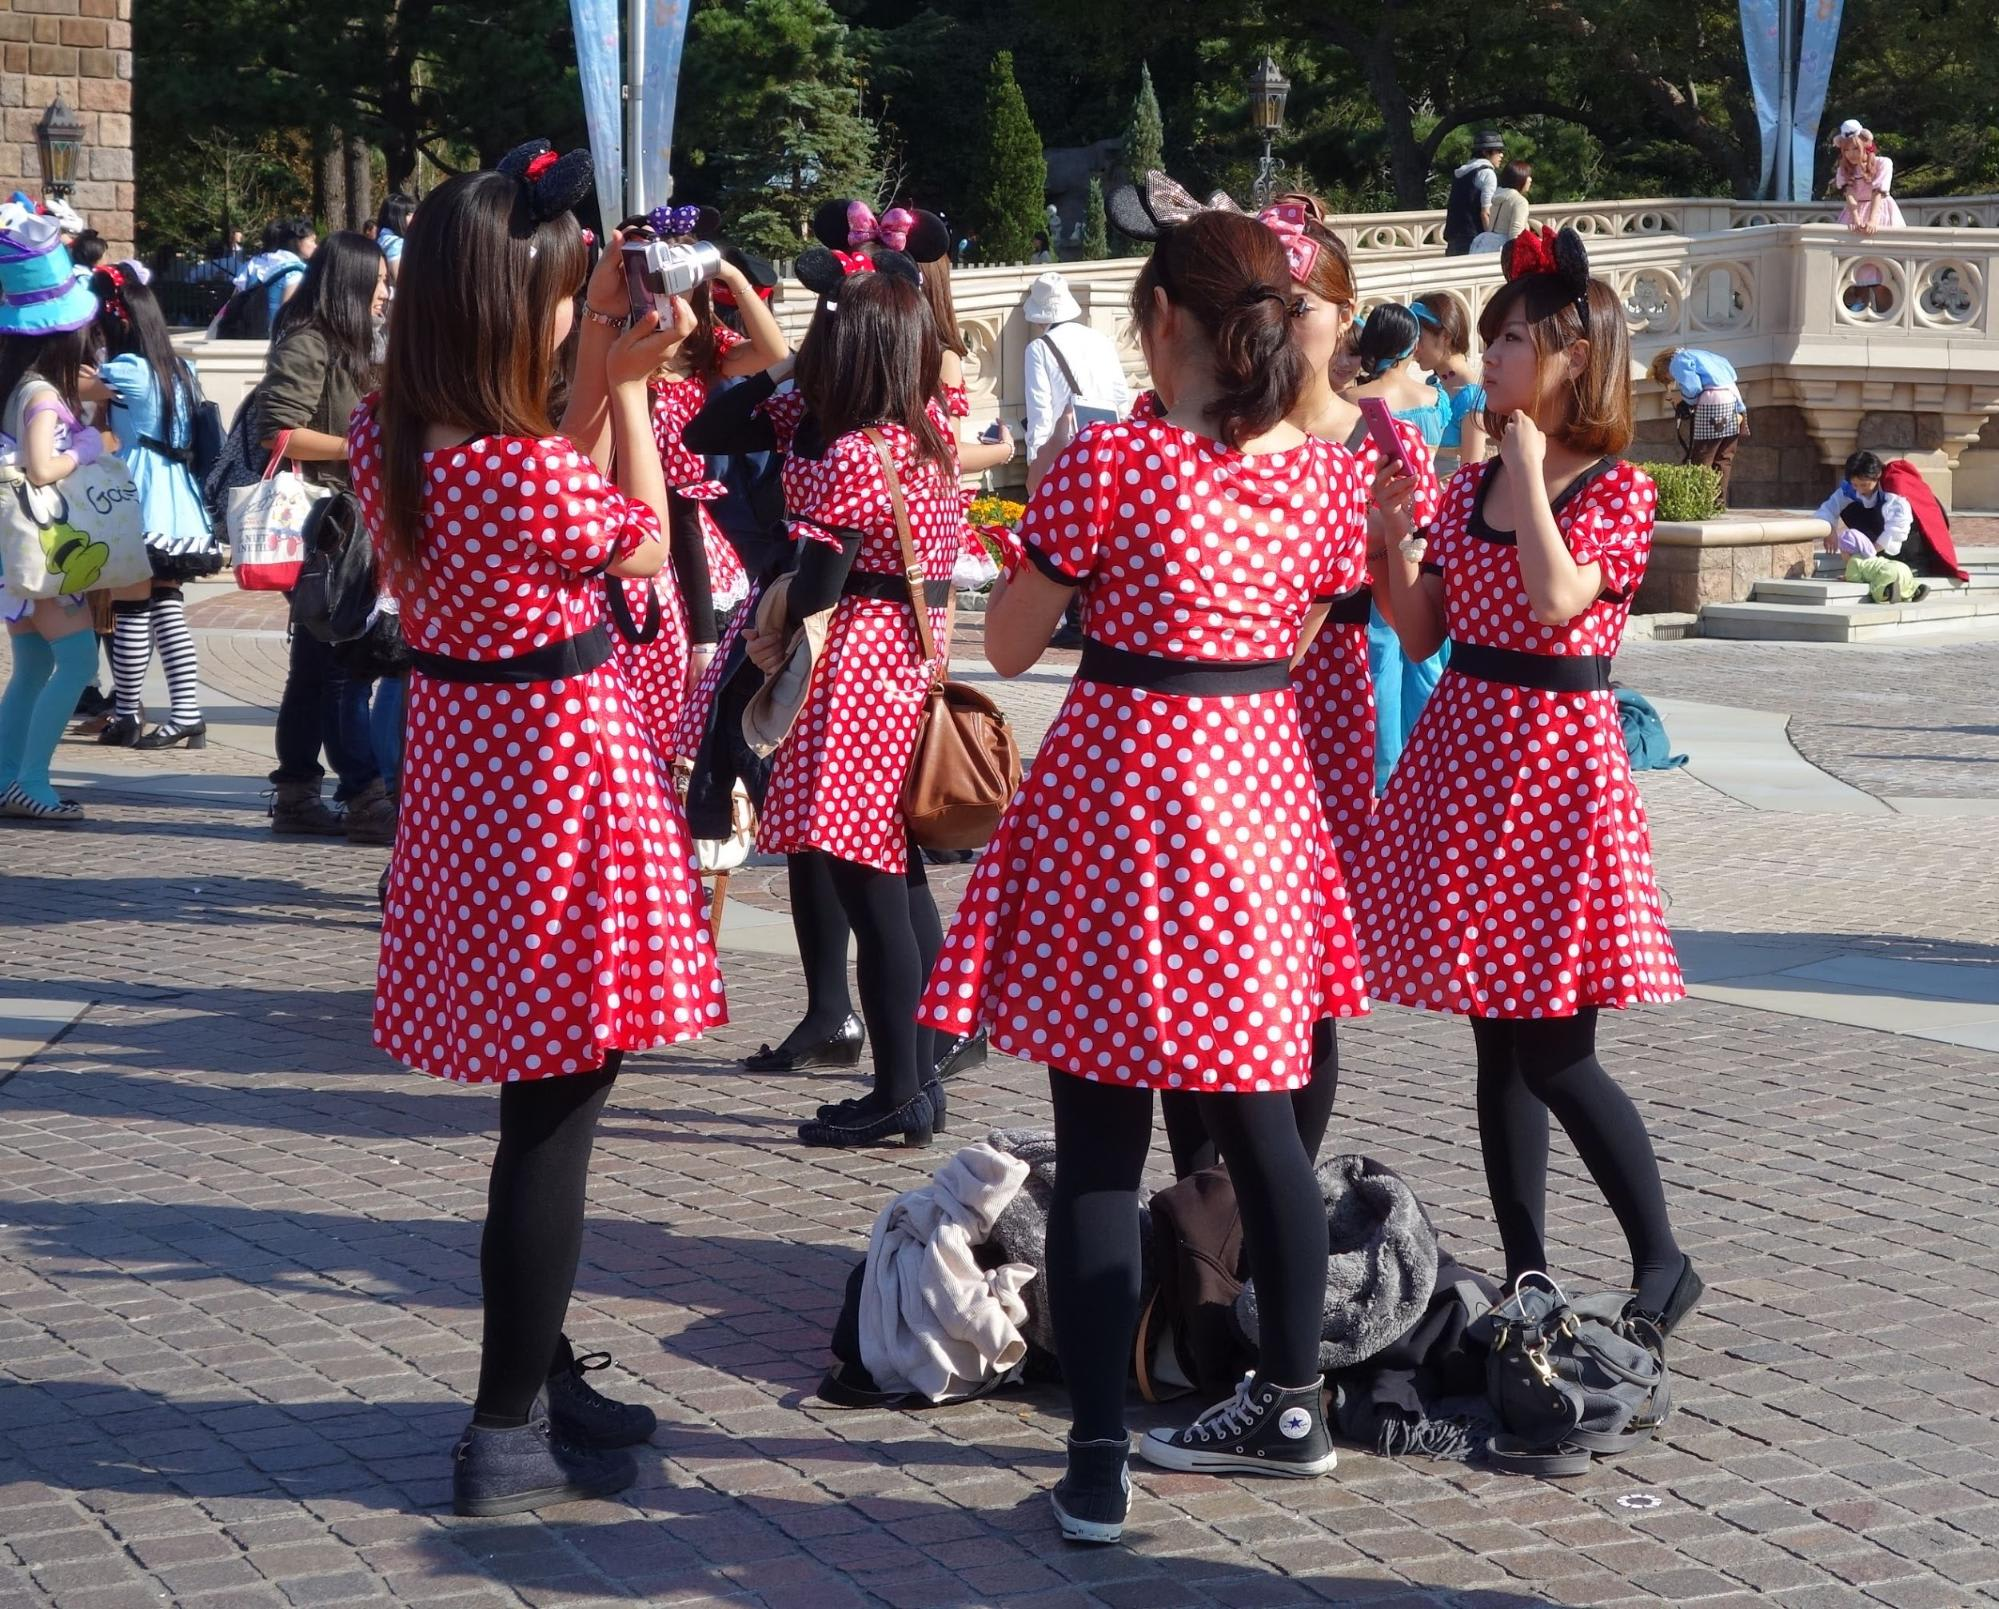 Matching outfits at DisneySea